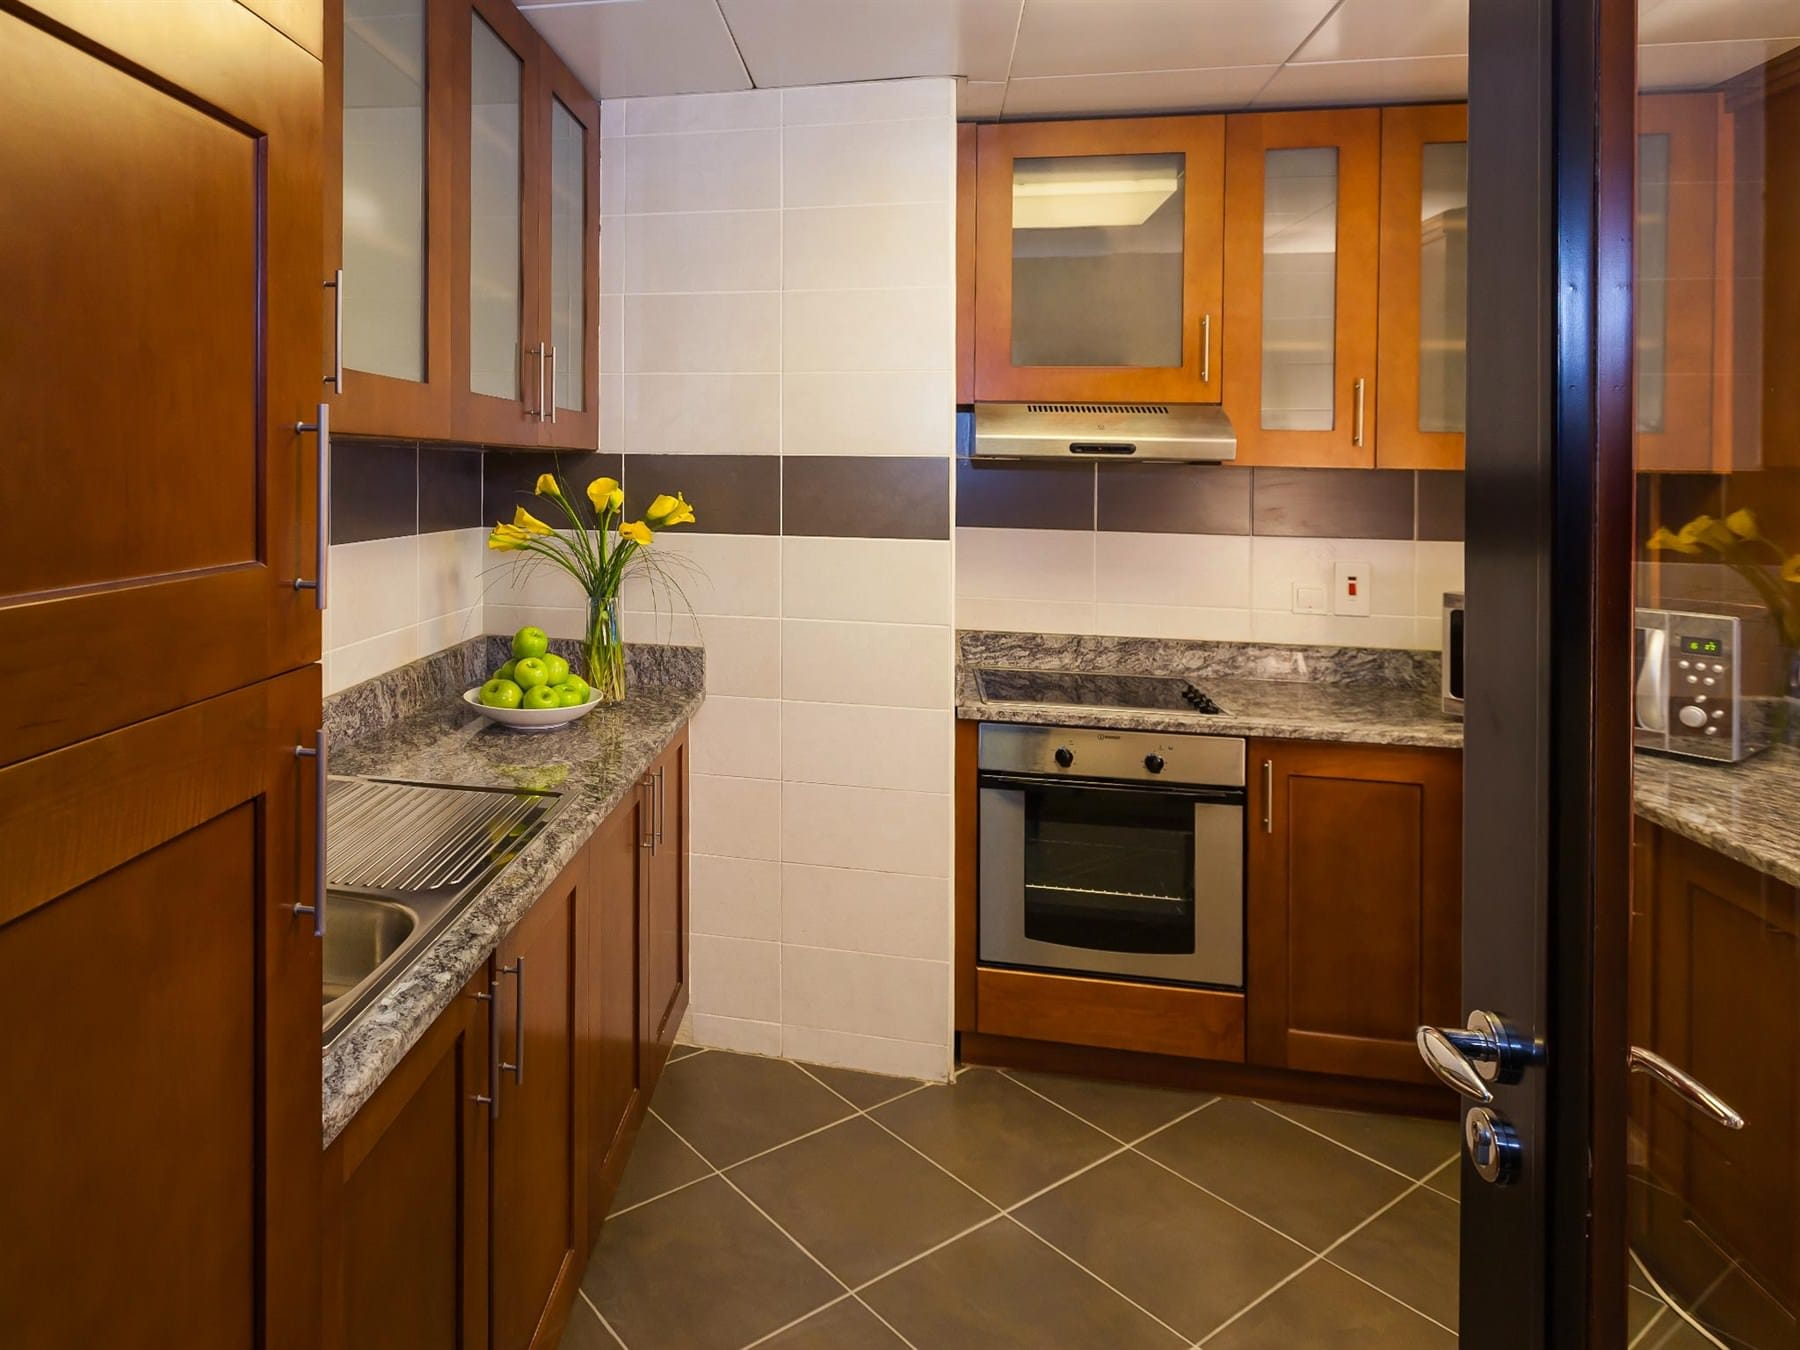 1BHK Park View Kitchen